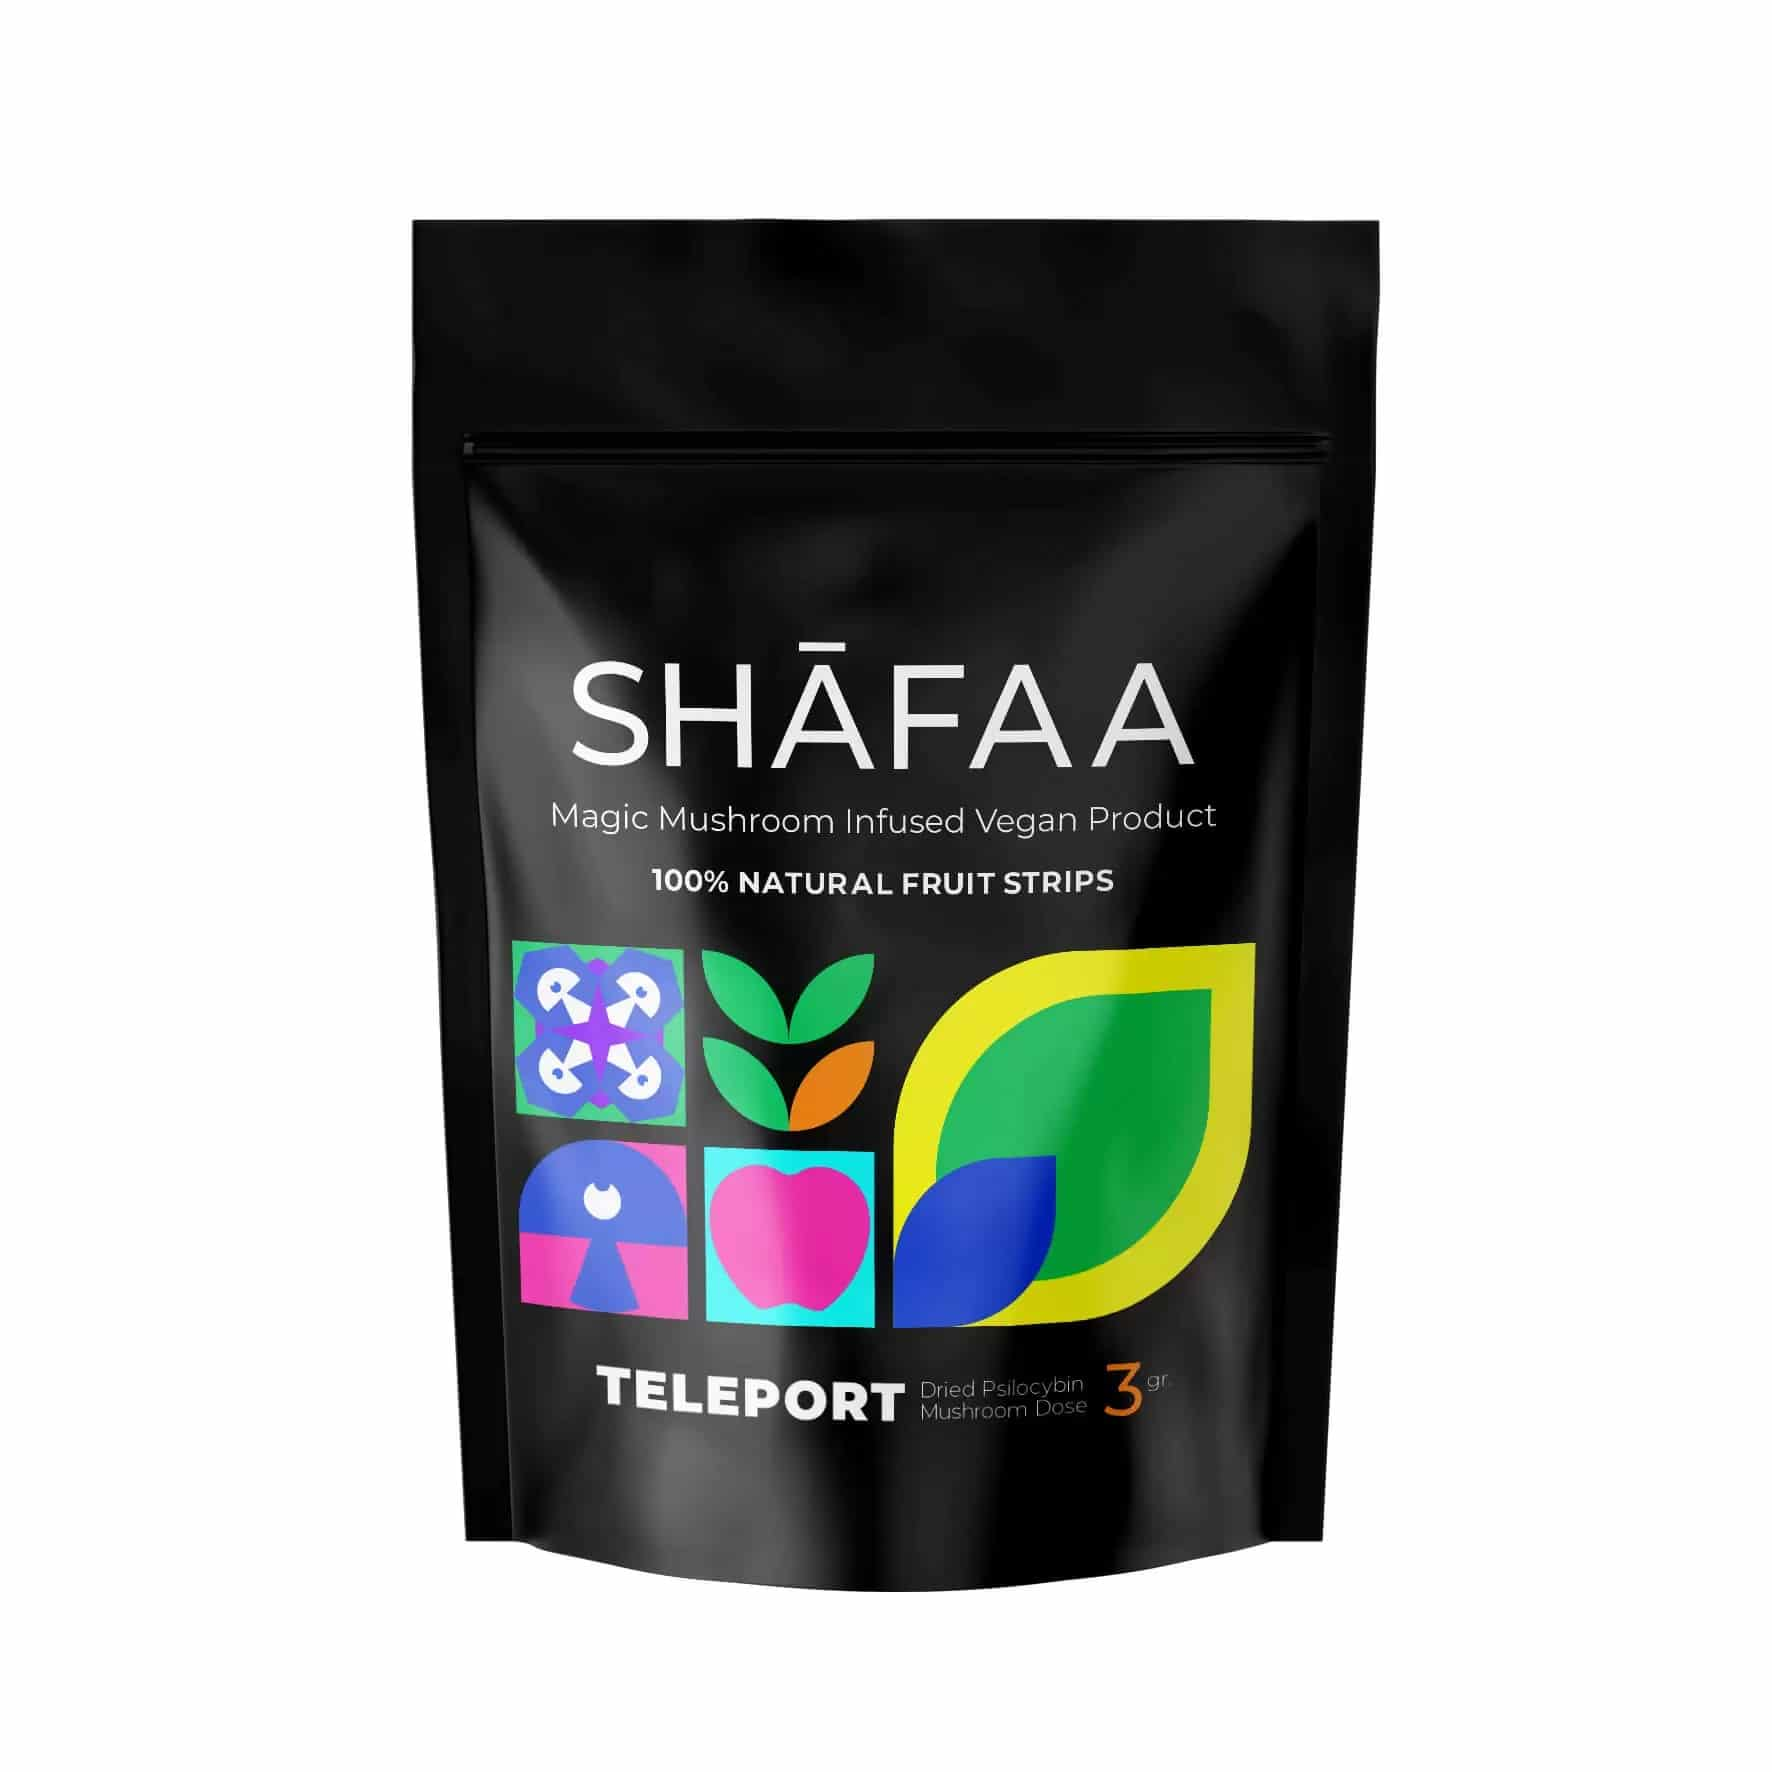 Shafaa Teleport Macrodose Magic Mushroom Vegan Fruit Strips – 3G